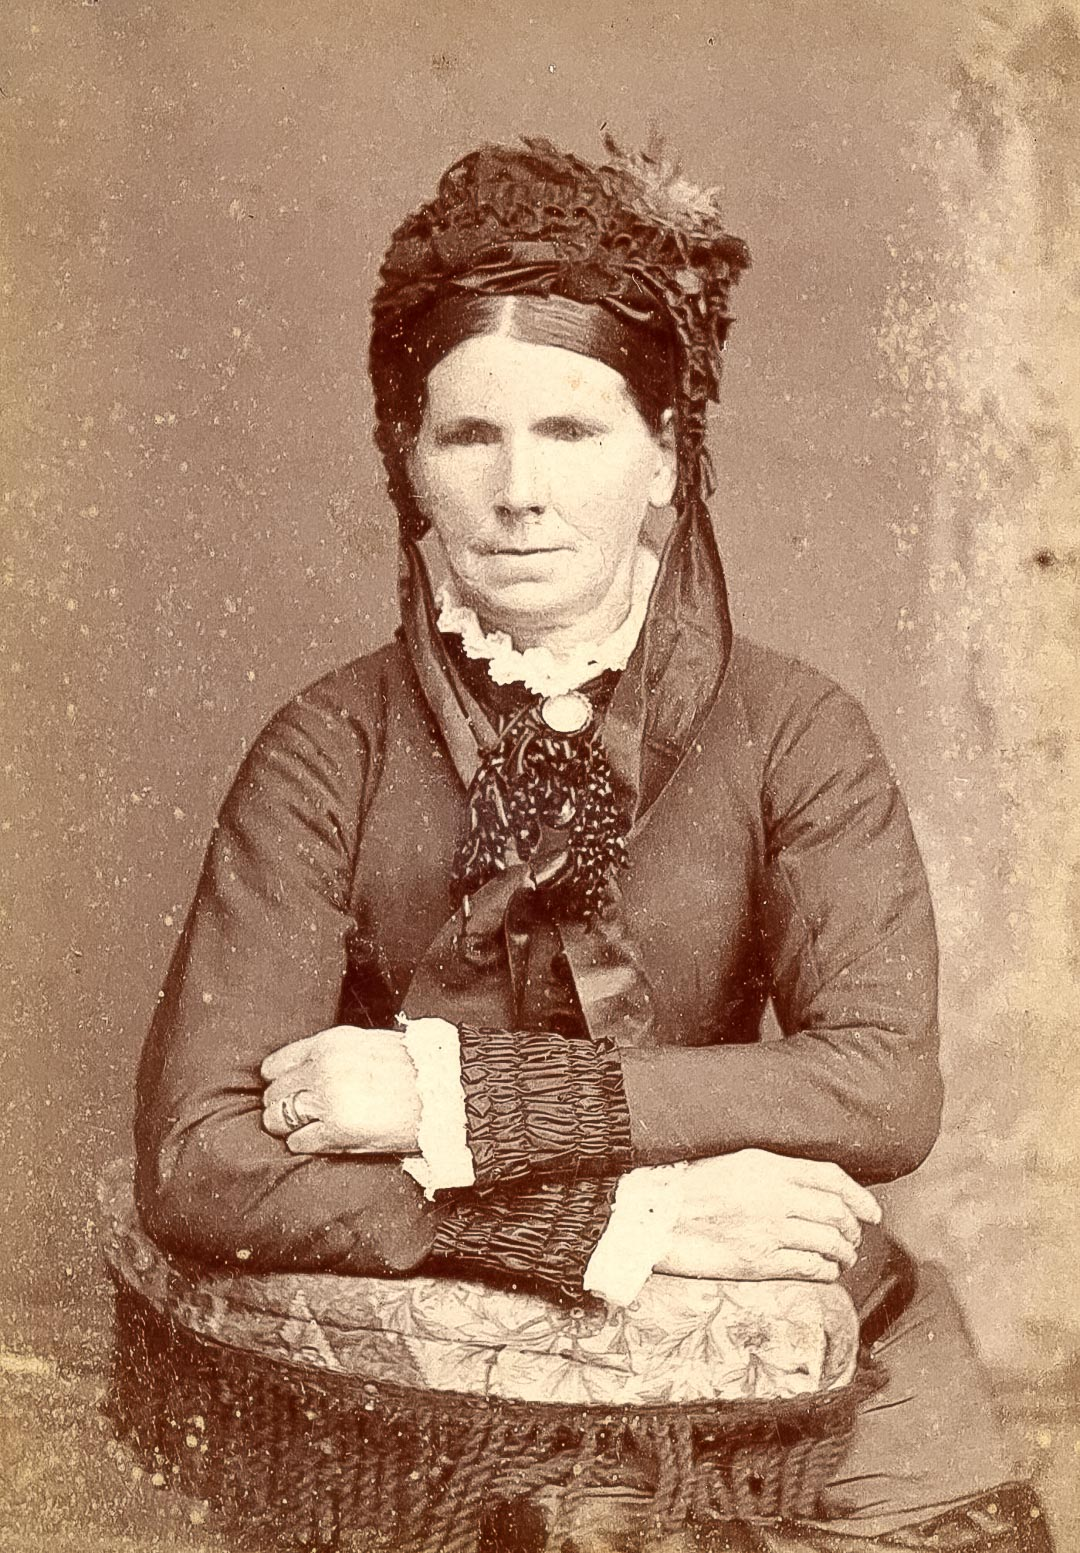 Mrs Elizabeth Ann Murphy, wife of Thomas Murphy, both from County Armagh, Northern Ireland.  Thomas and Elizabeth built their home beside the Deep Creek, then a beautiful stream teeming with black fish, having selected 80 acres adjacent to Charles Draper's allotment, and the family of five boys and two girls moved to Arthurs Creek in 1864